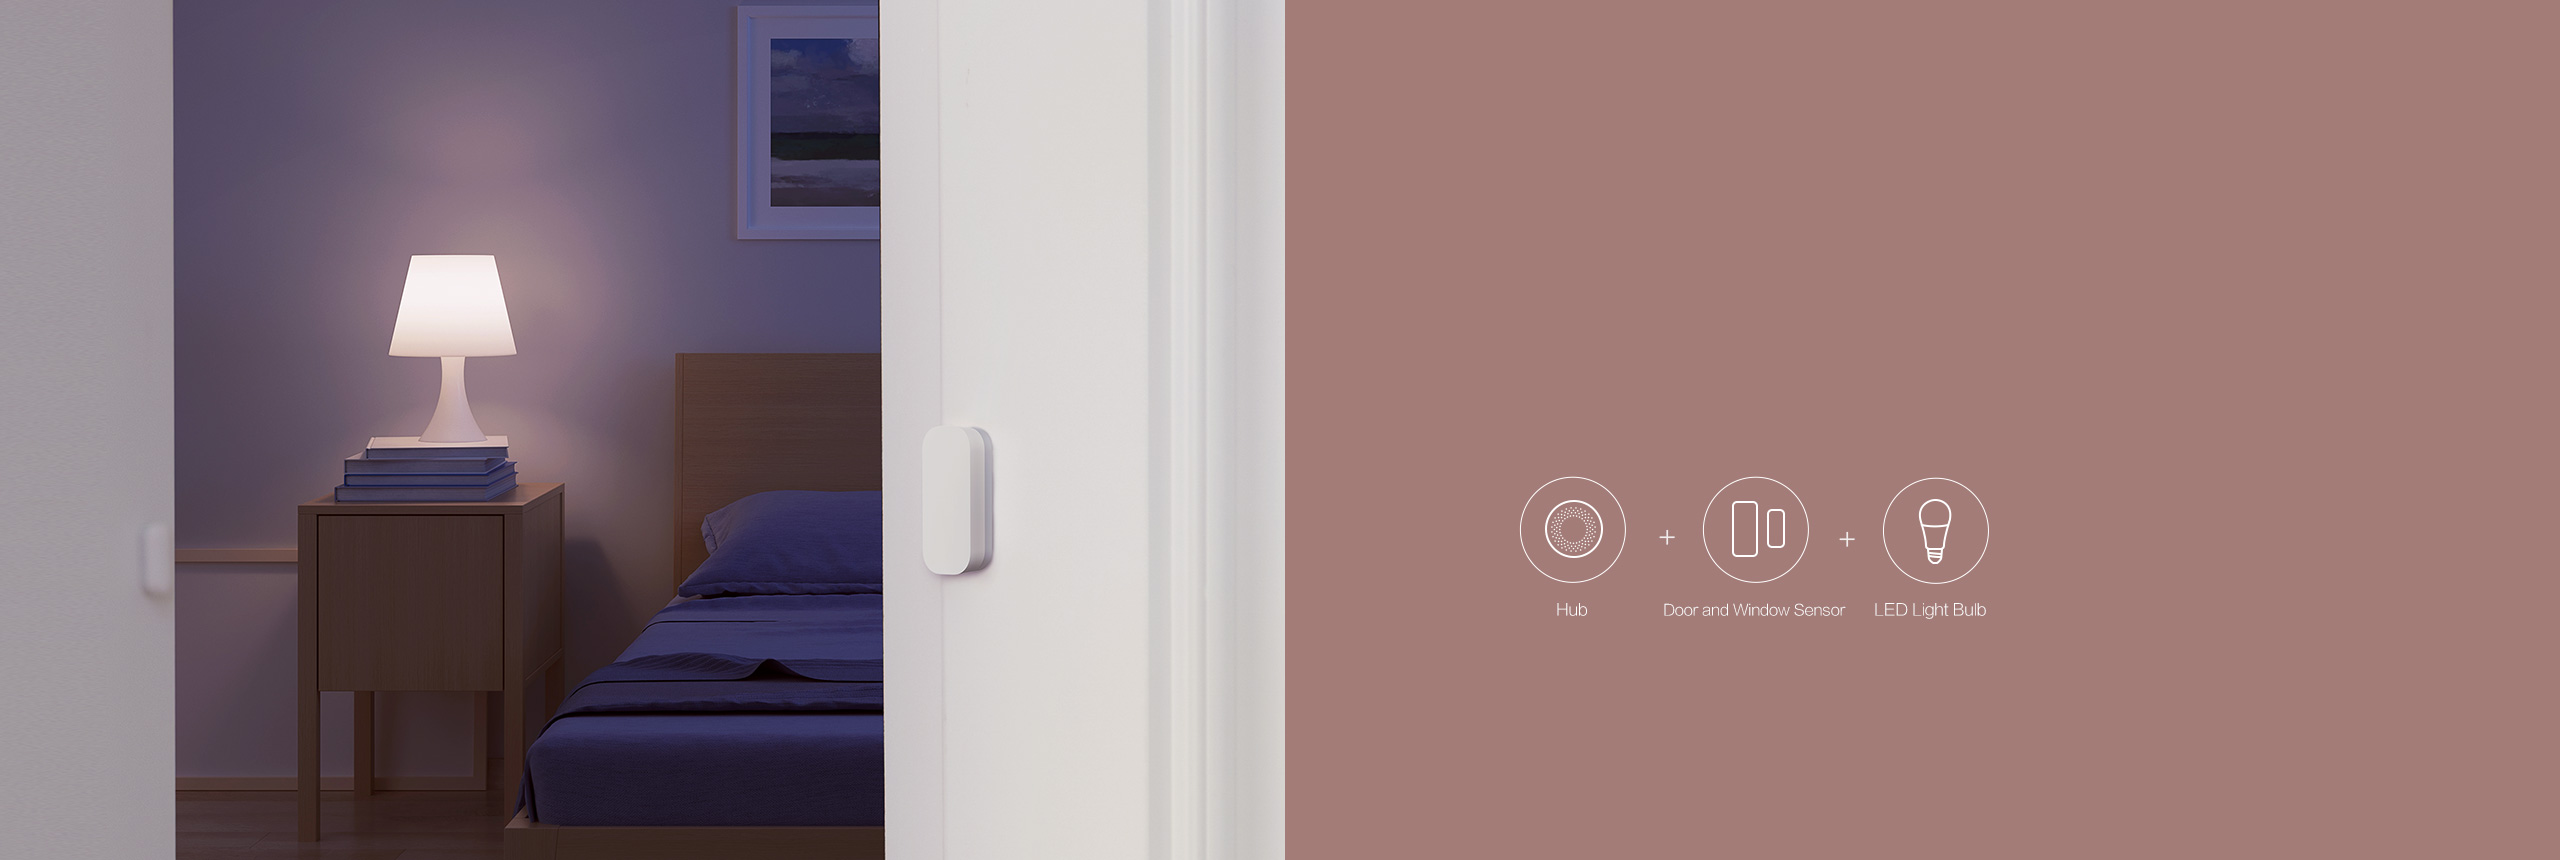 Smart bulb + door swnsor: Lights Automatically Turn On When You Open the Door